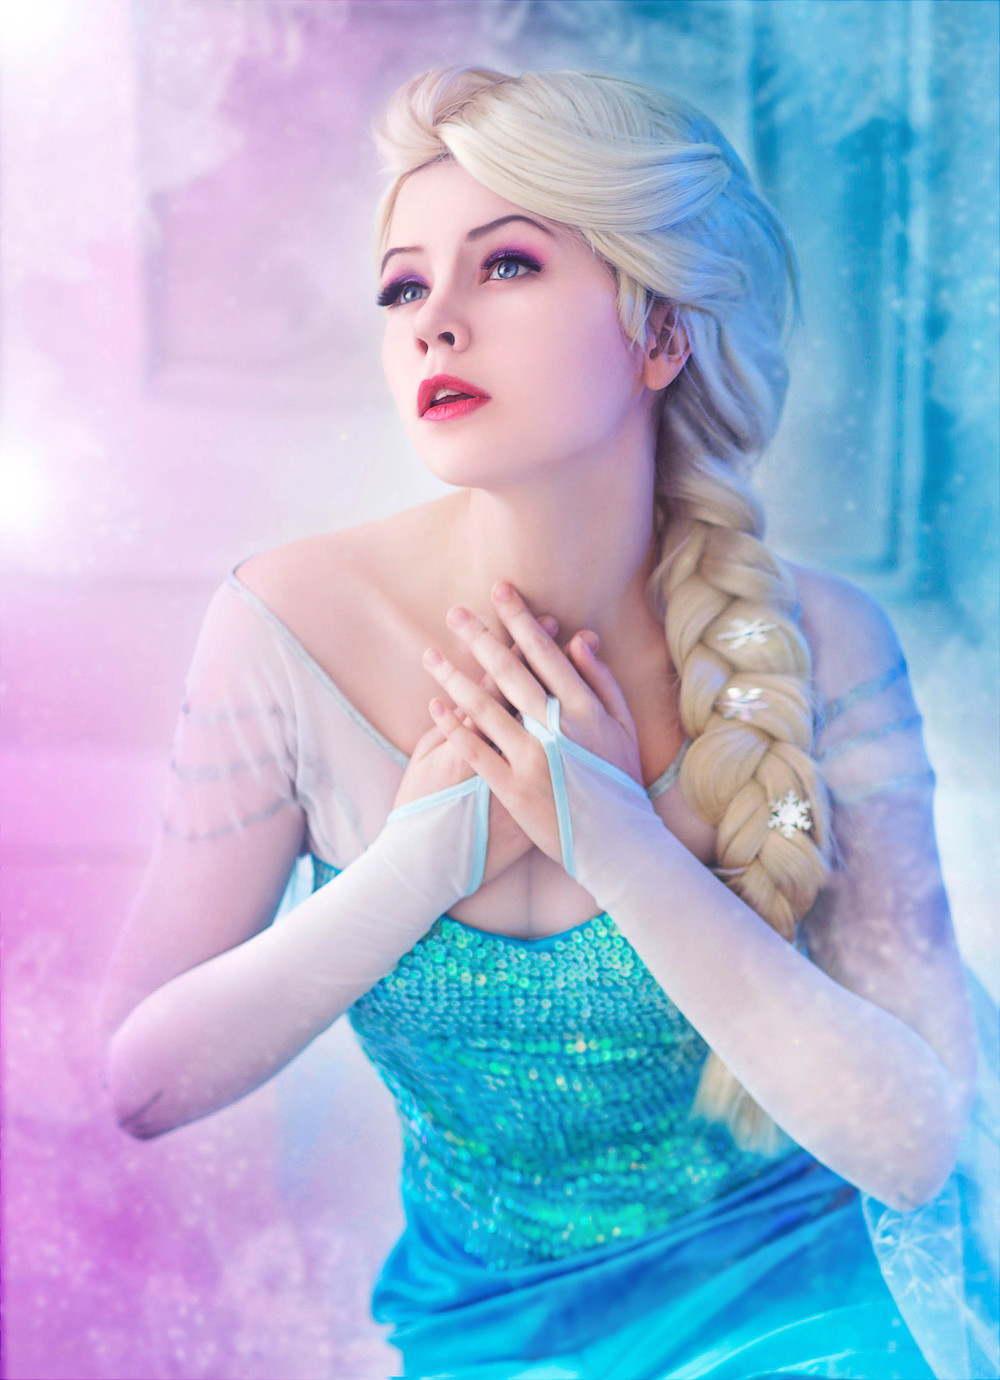 ve got a Best of Elsa cosplay in the works, but just had to share ...: geektyrant.com/news/dazzling-elsa-from-frozen-cosplay